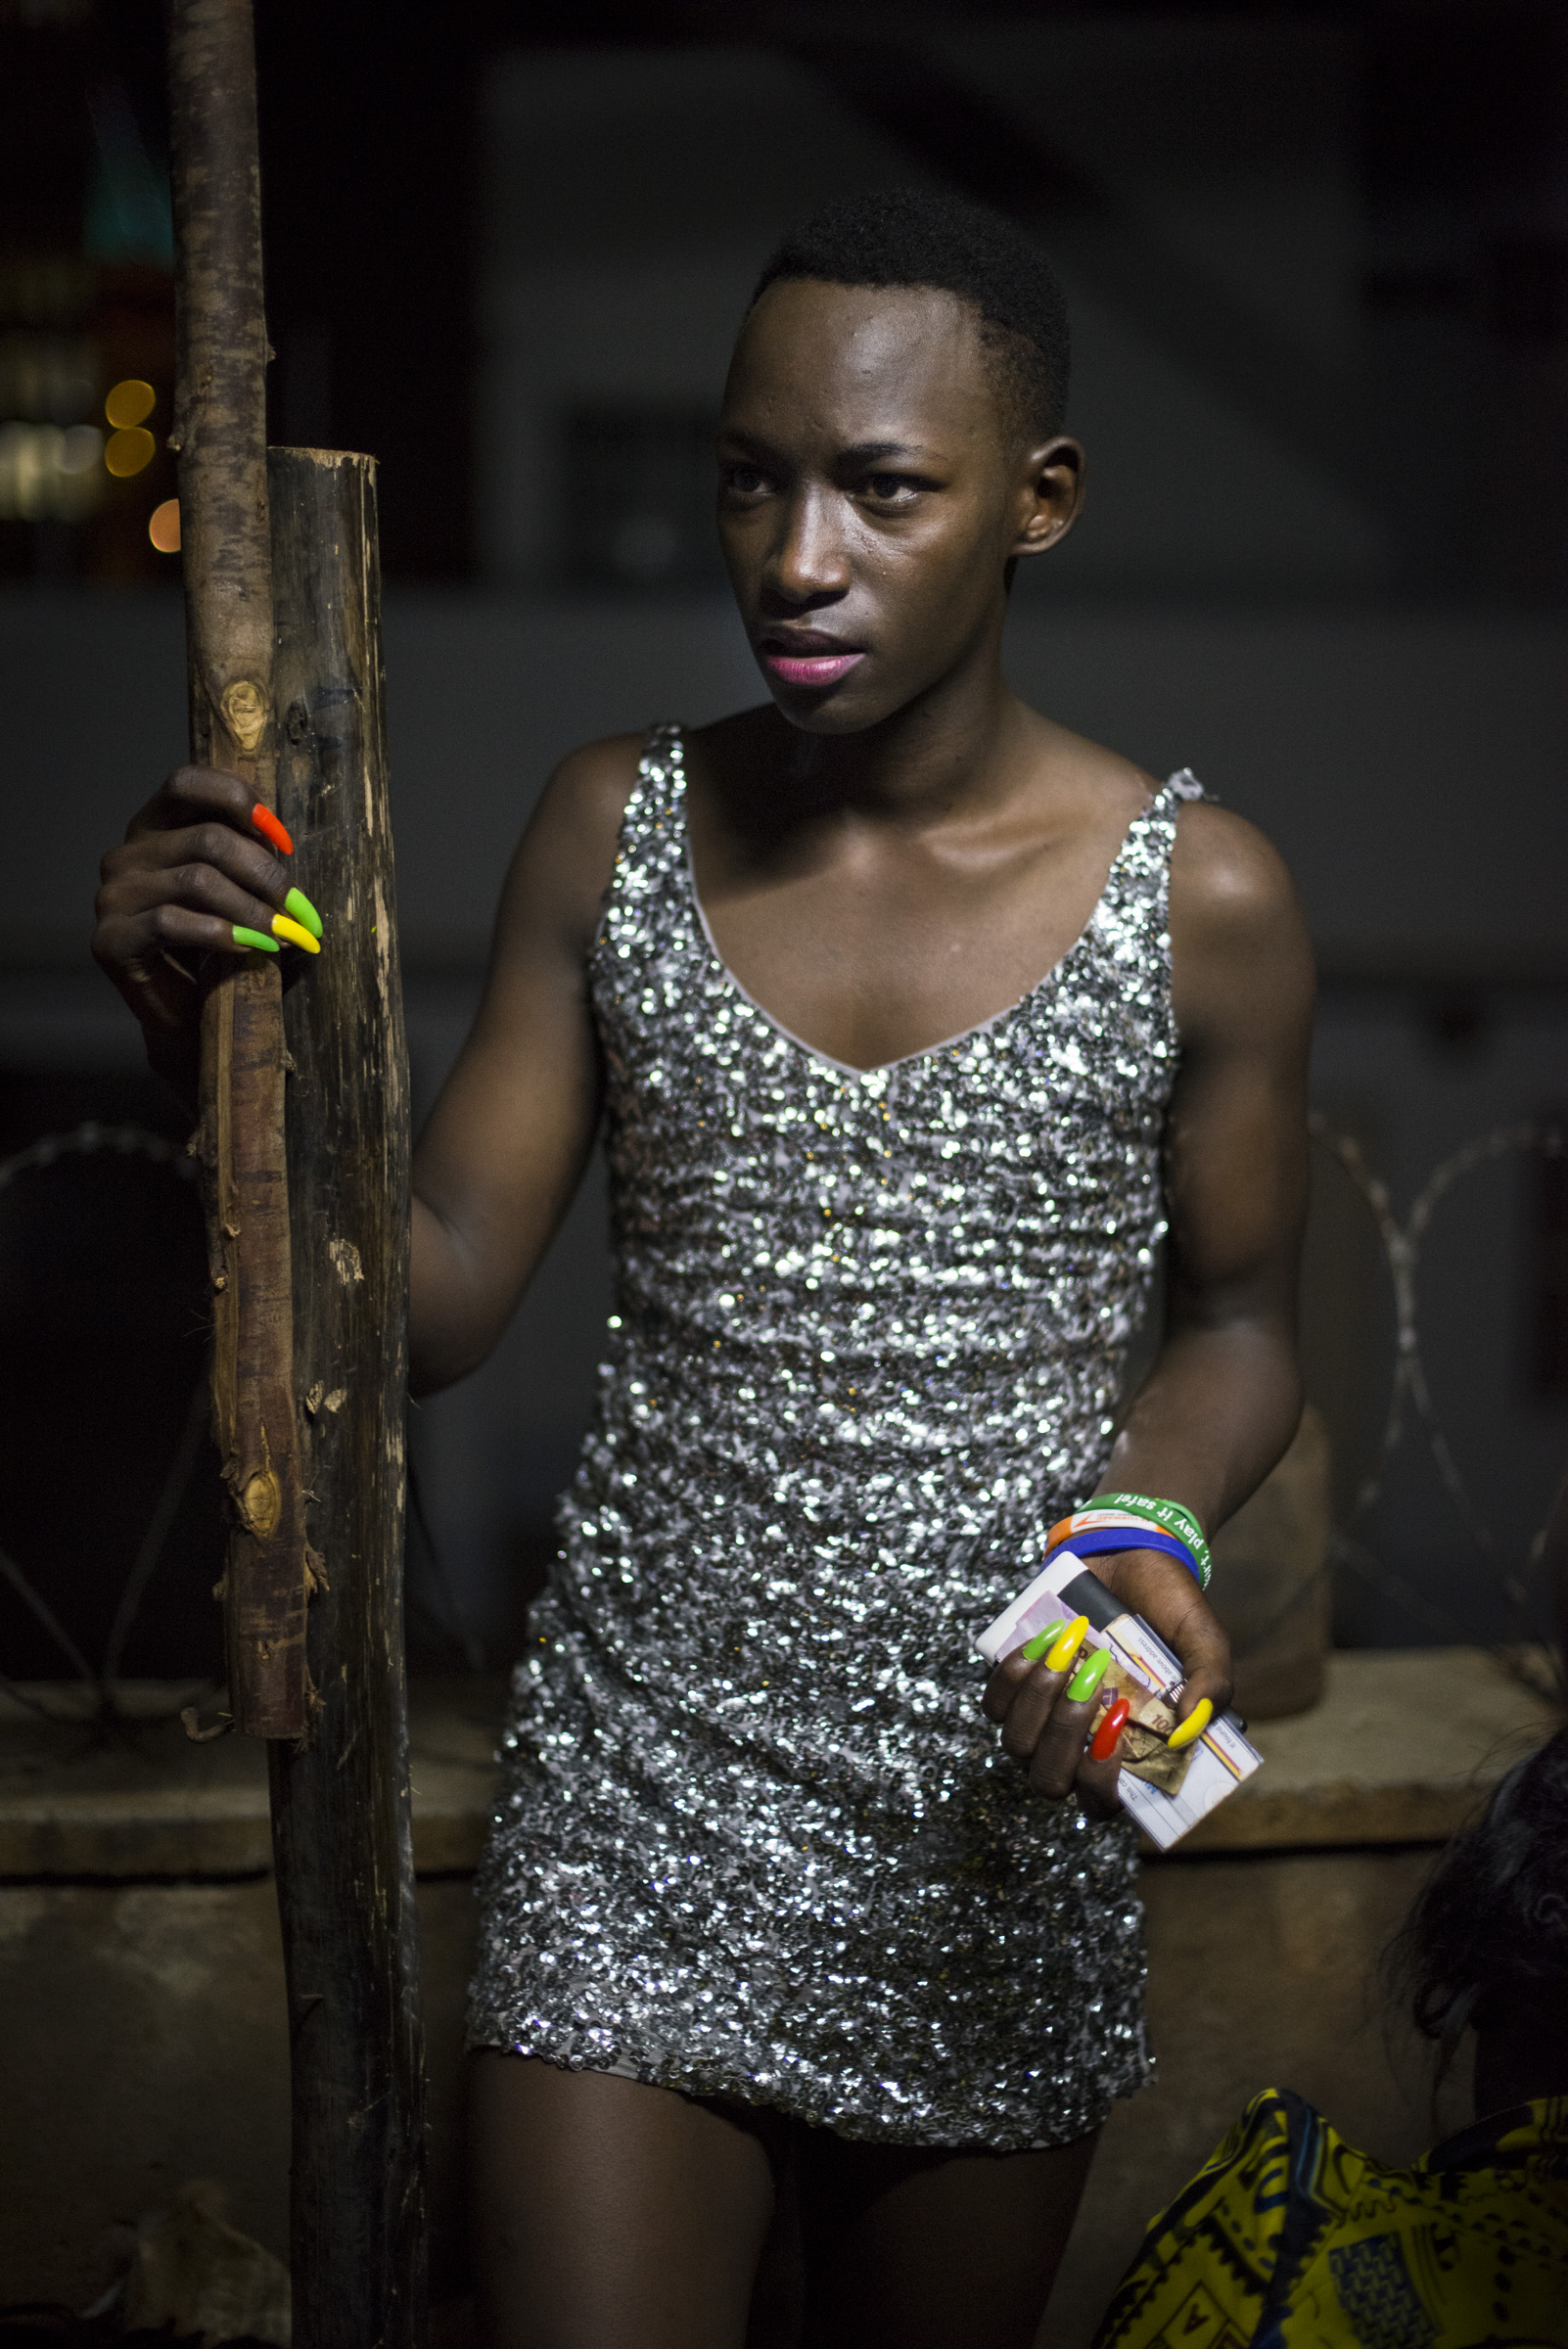 A contestant prepares backstage for the Mister and Miss Pride competition. (Photo by Diana Zeyneb Alhindawi/GroundTruth)